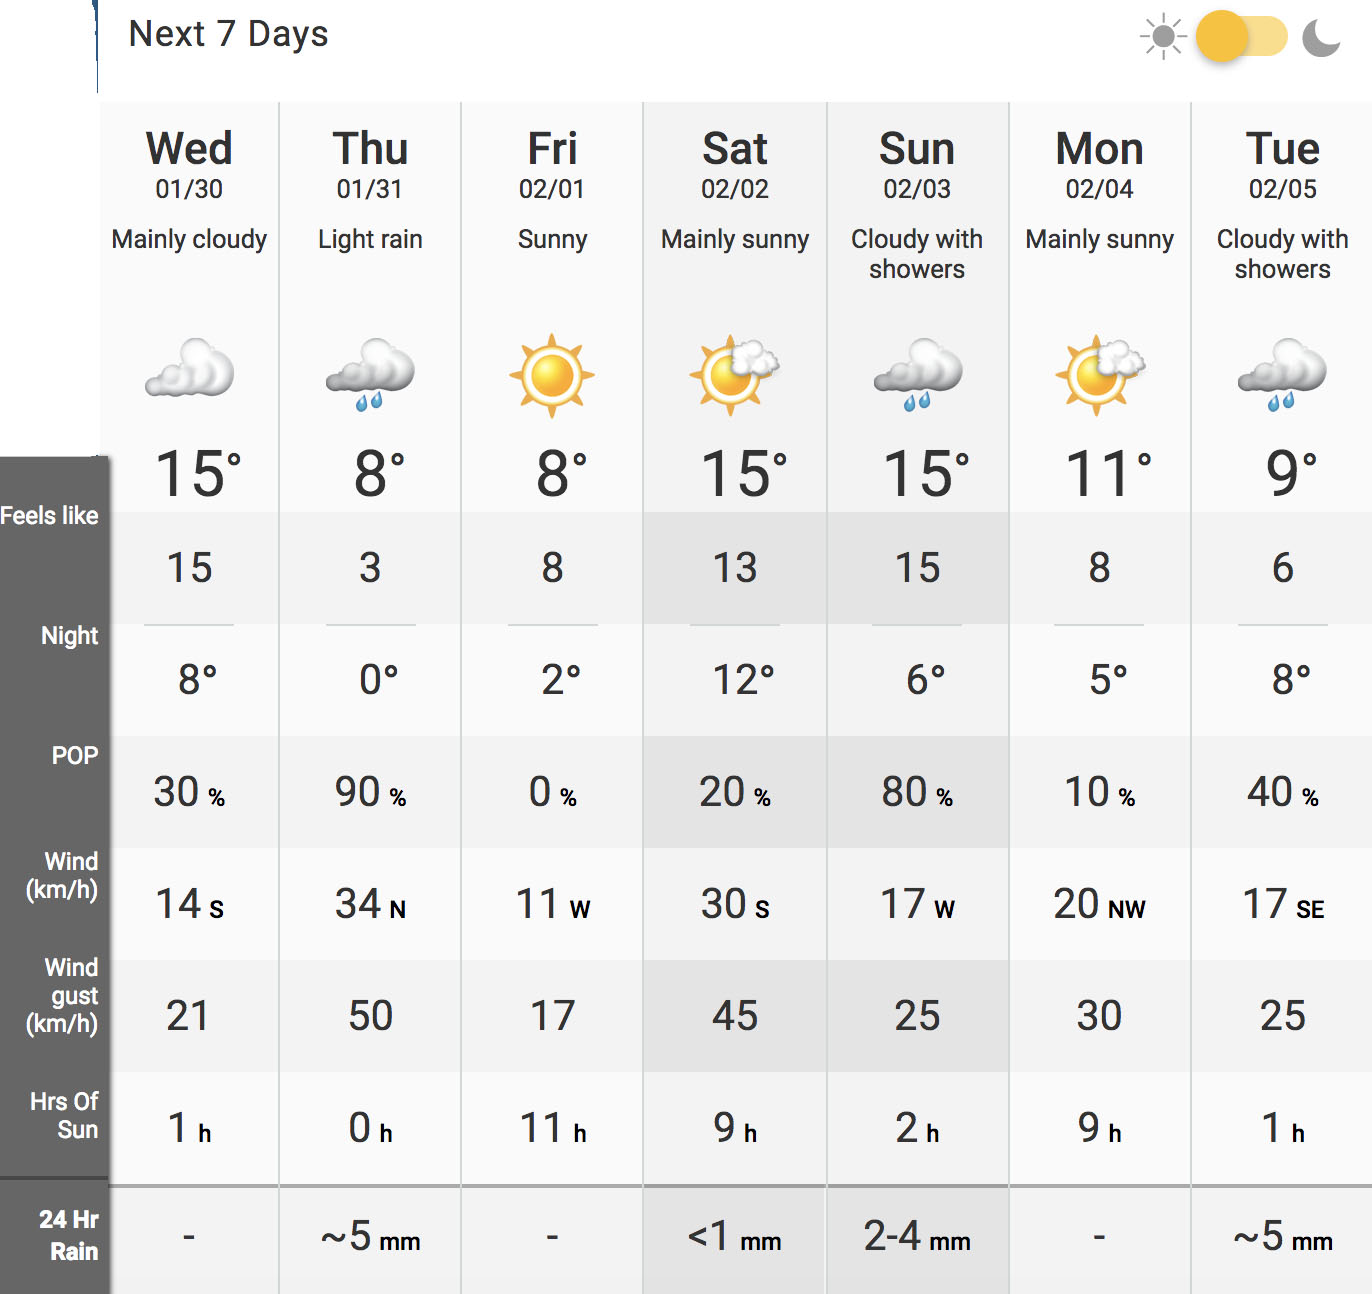 shanghai_weather_forecast_1.30-2_.5_.jpg